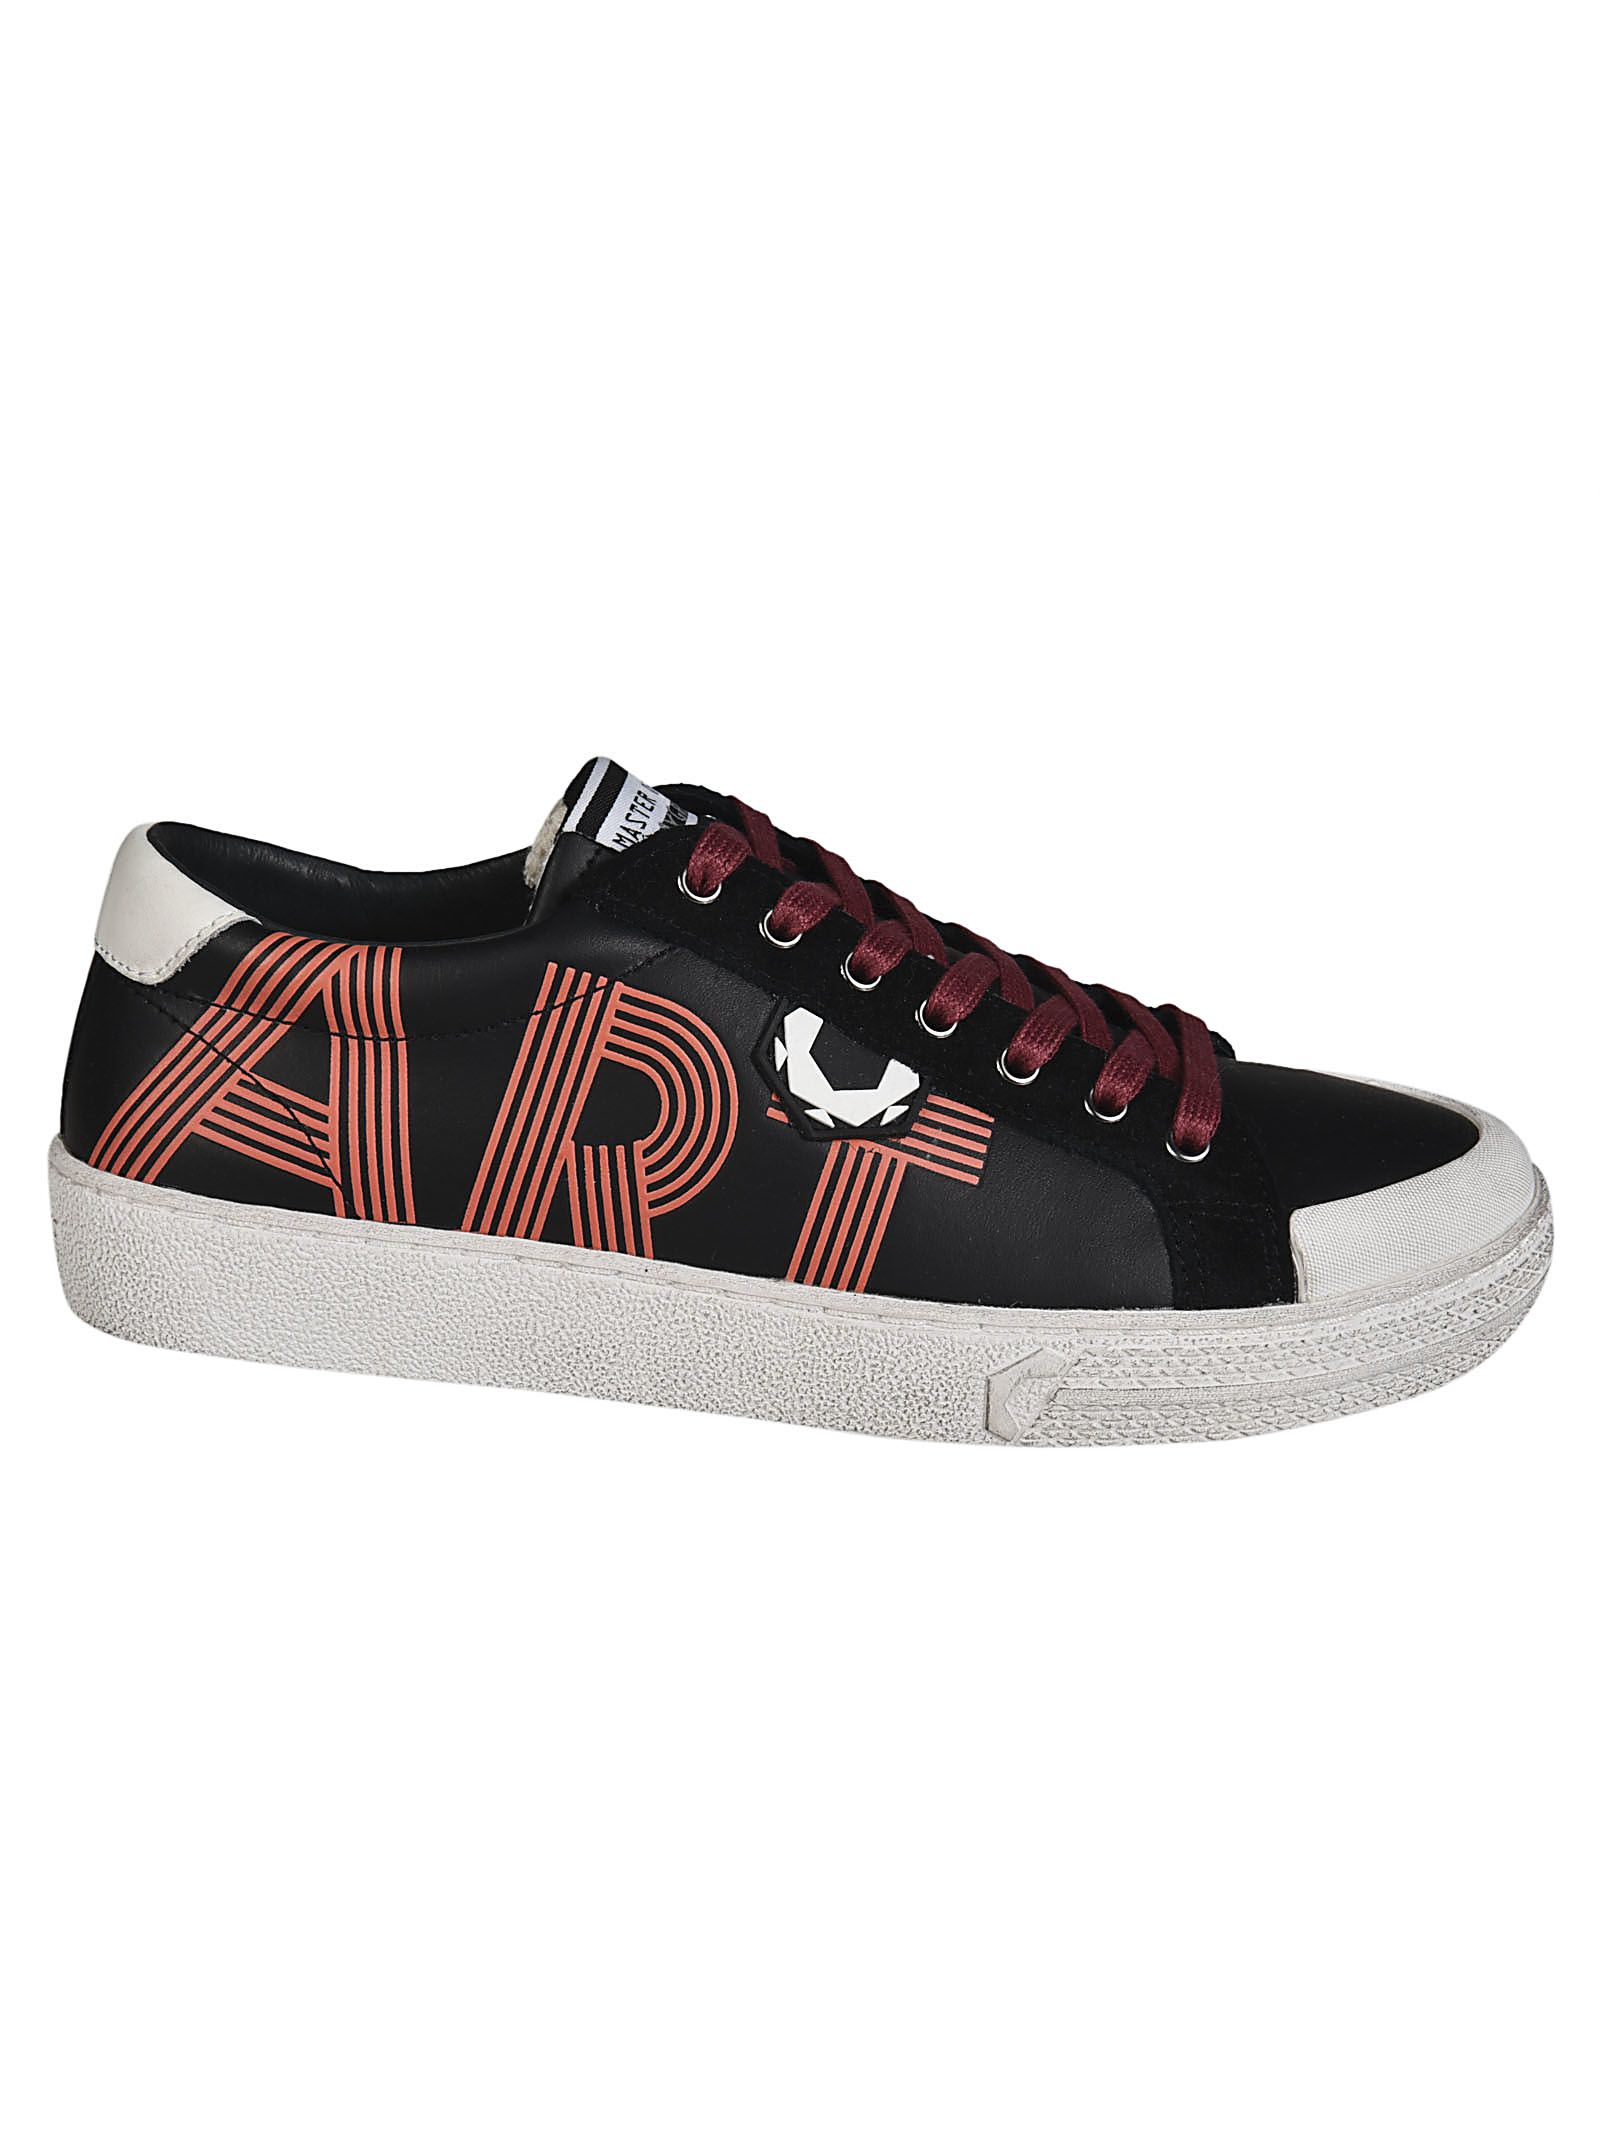 M.o.a. Kit Playground Art Sneakers